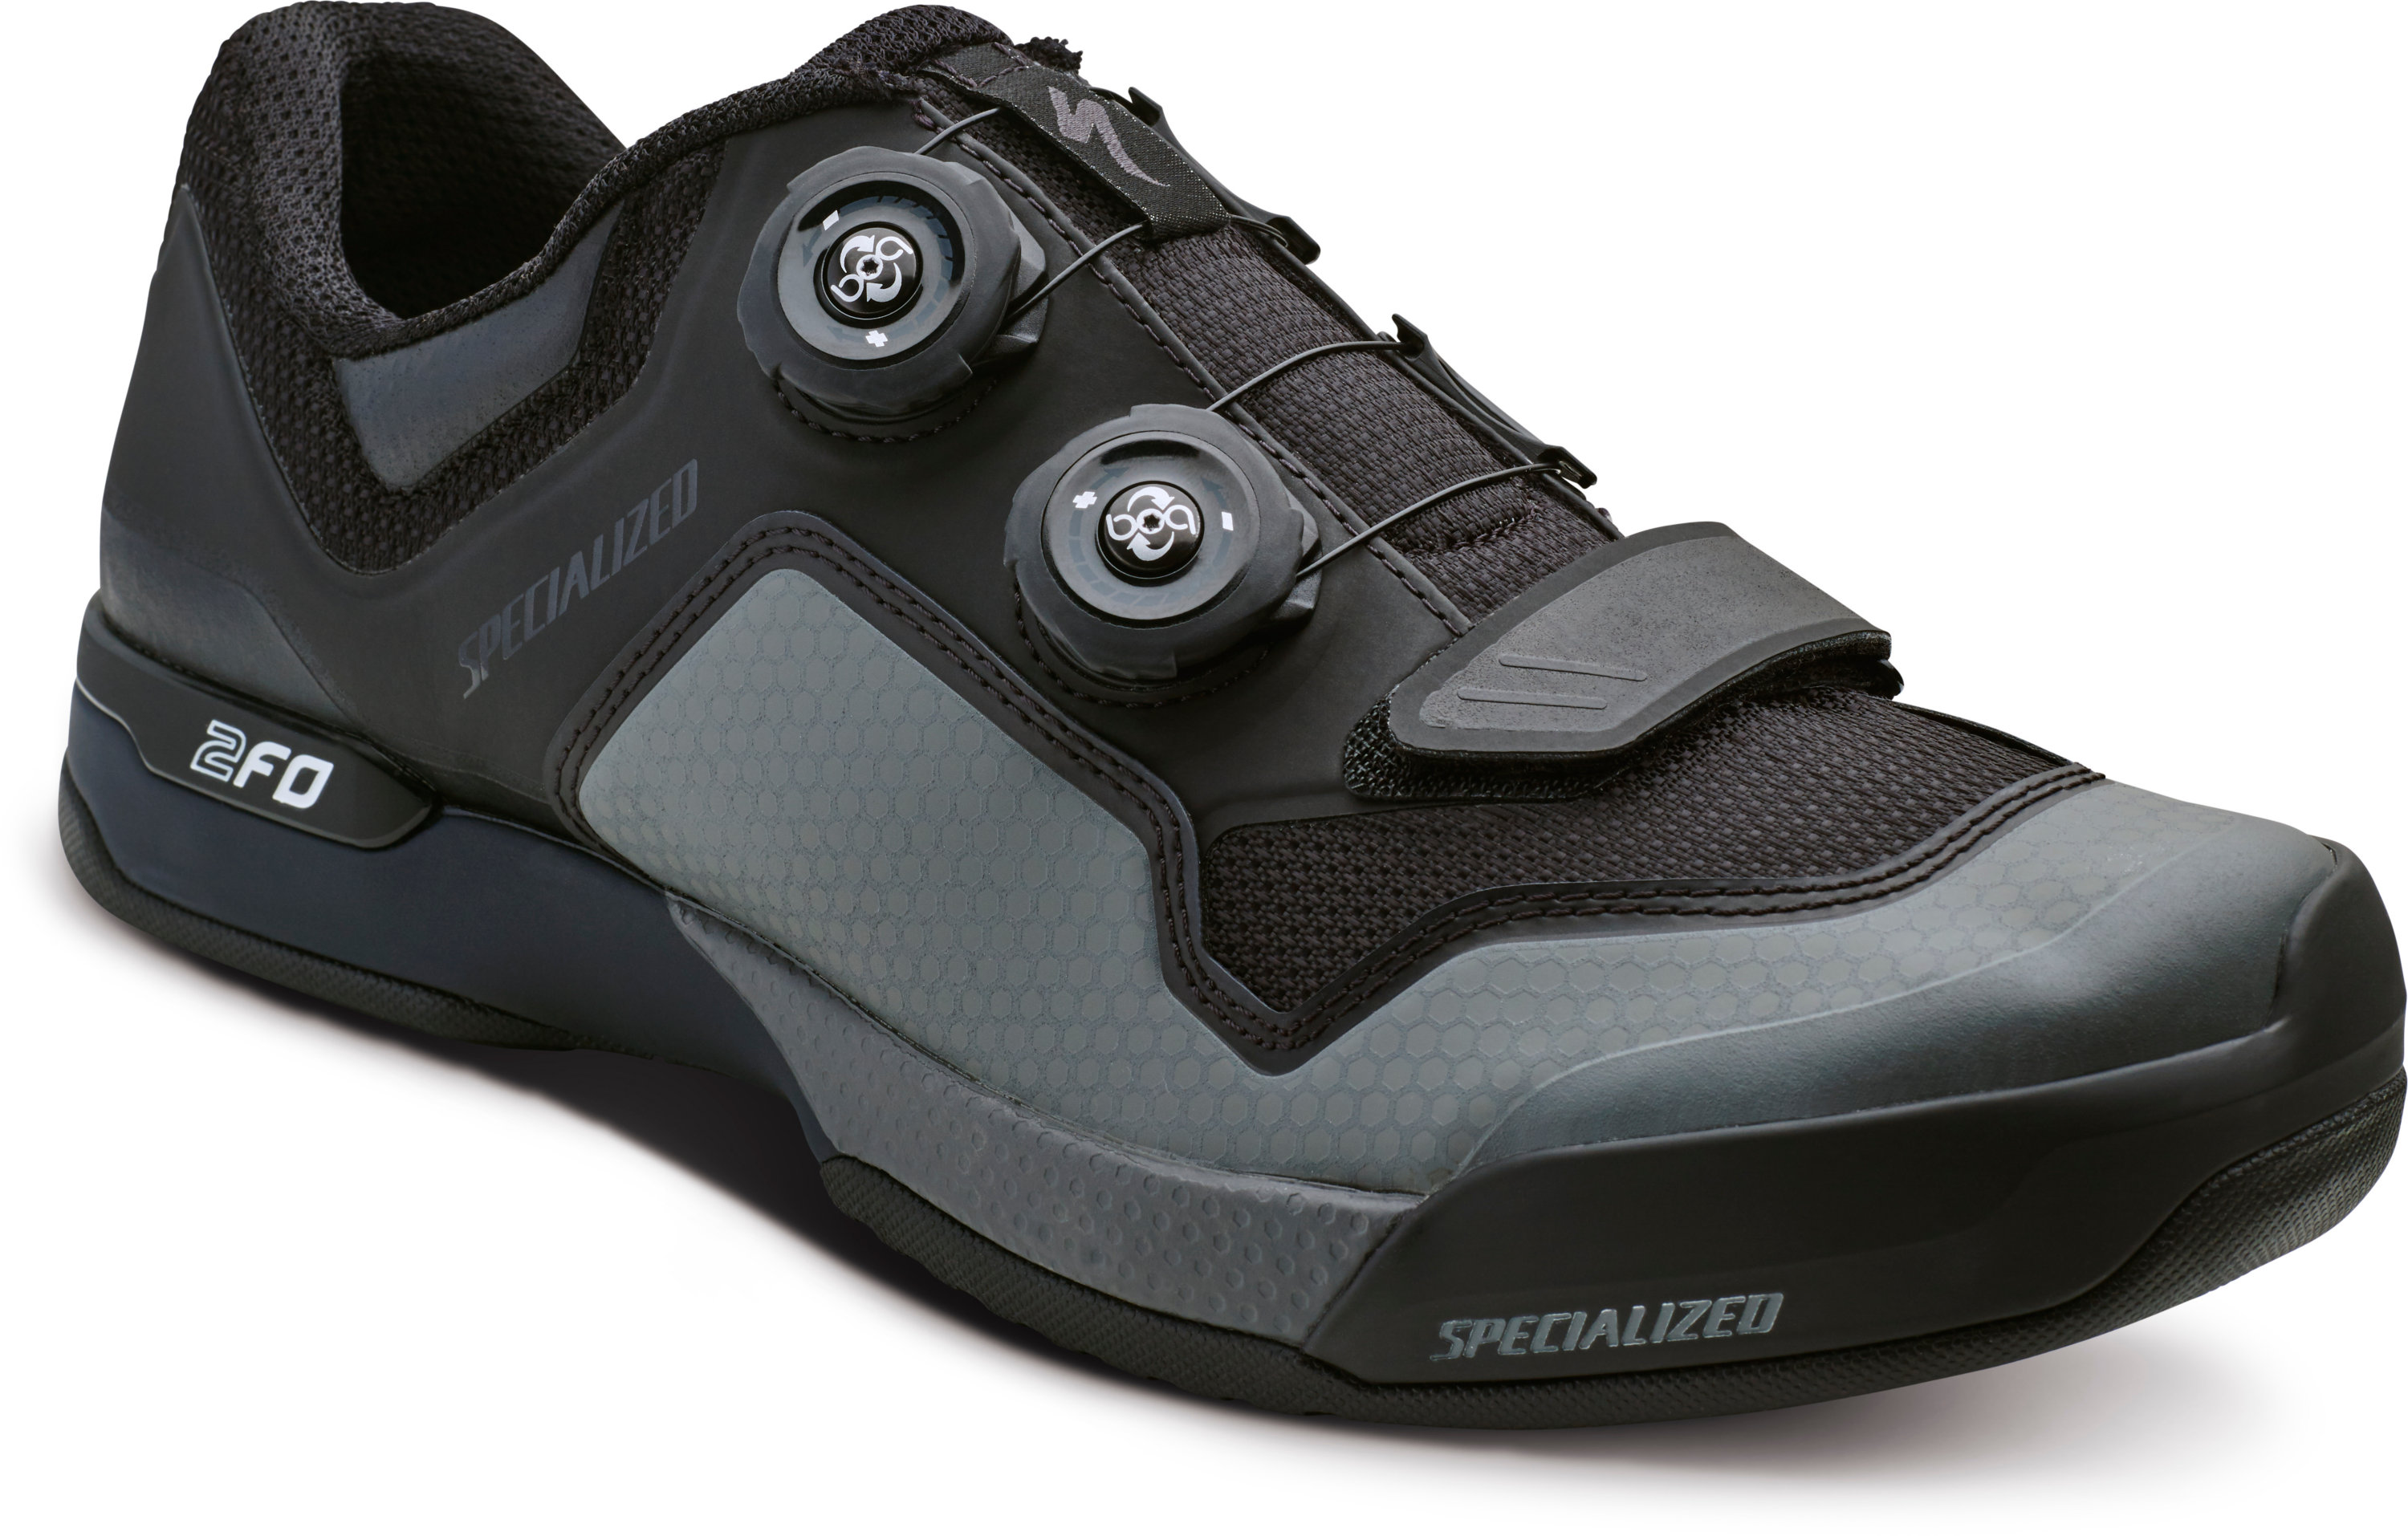 SPECIALIZED 2FO CLIPLITE MTB SHOE BLK/DKGRY 39/6.5 - Pulsschlag Bike+Sport